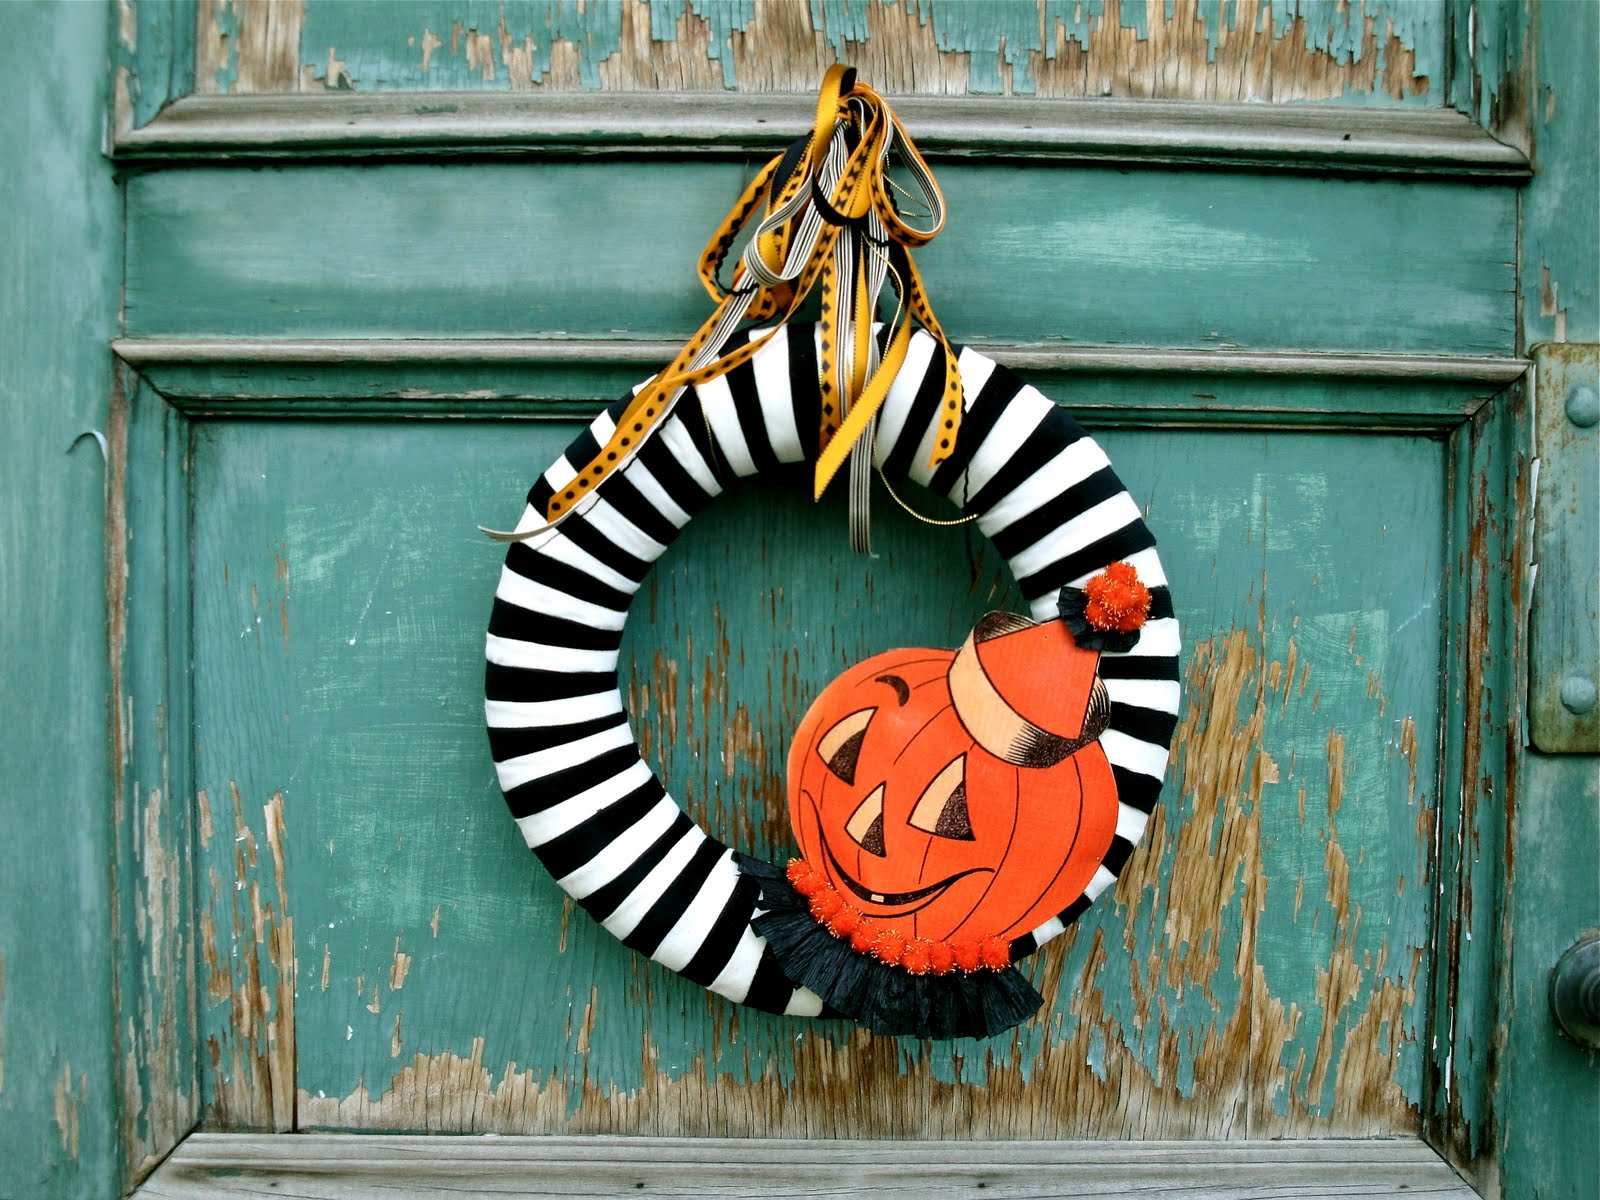 Vintage Black and White Halloween Wreath